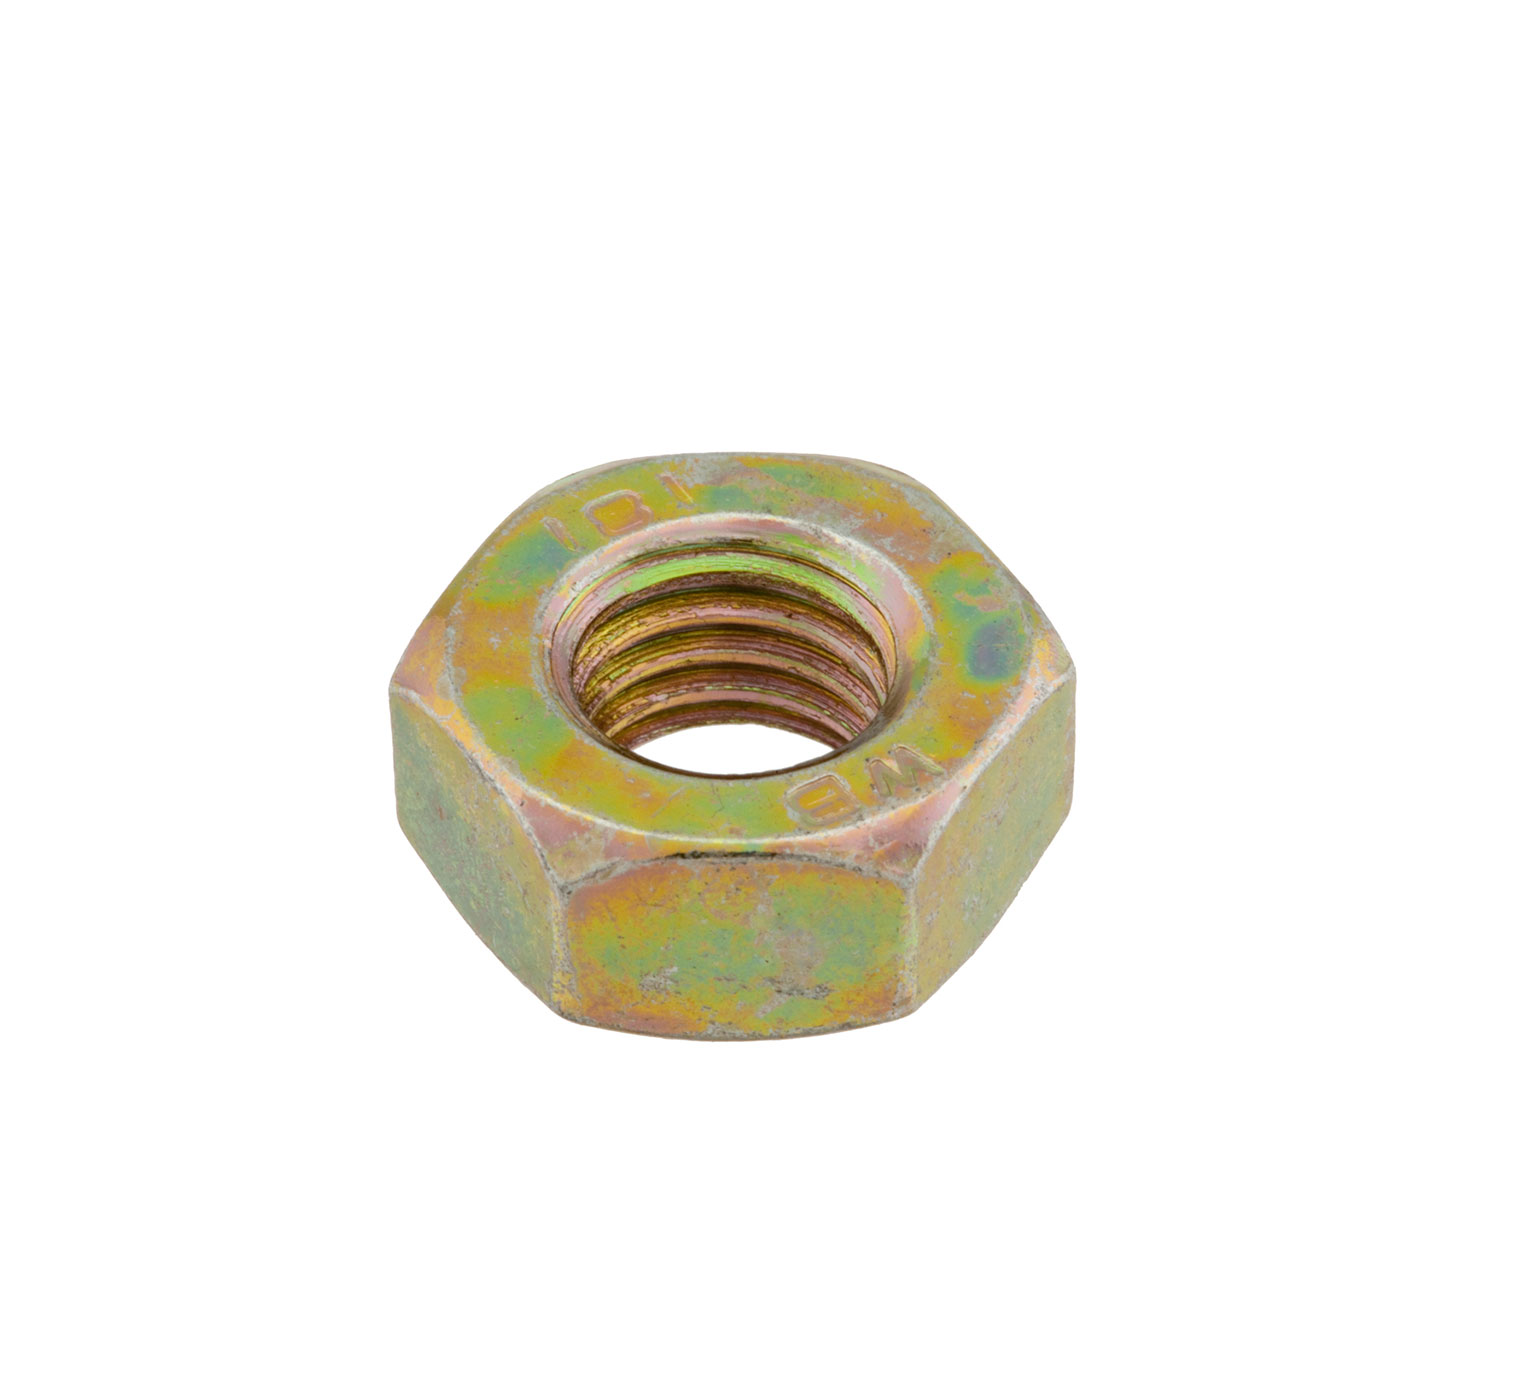 39312 Steel Hex Nut - 0.669 x 0.314 in alt 1